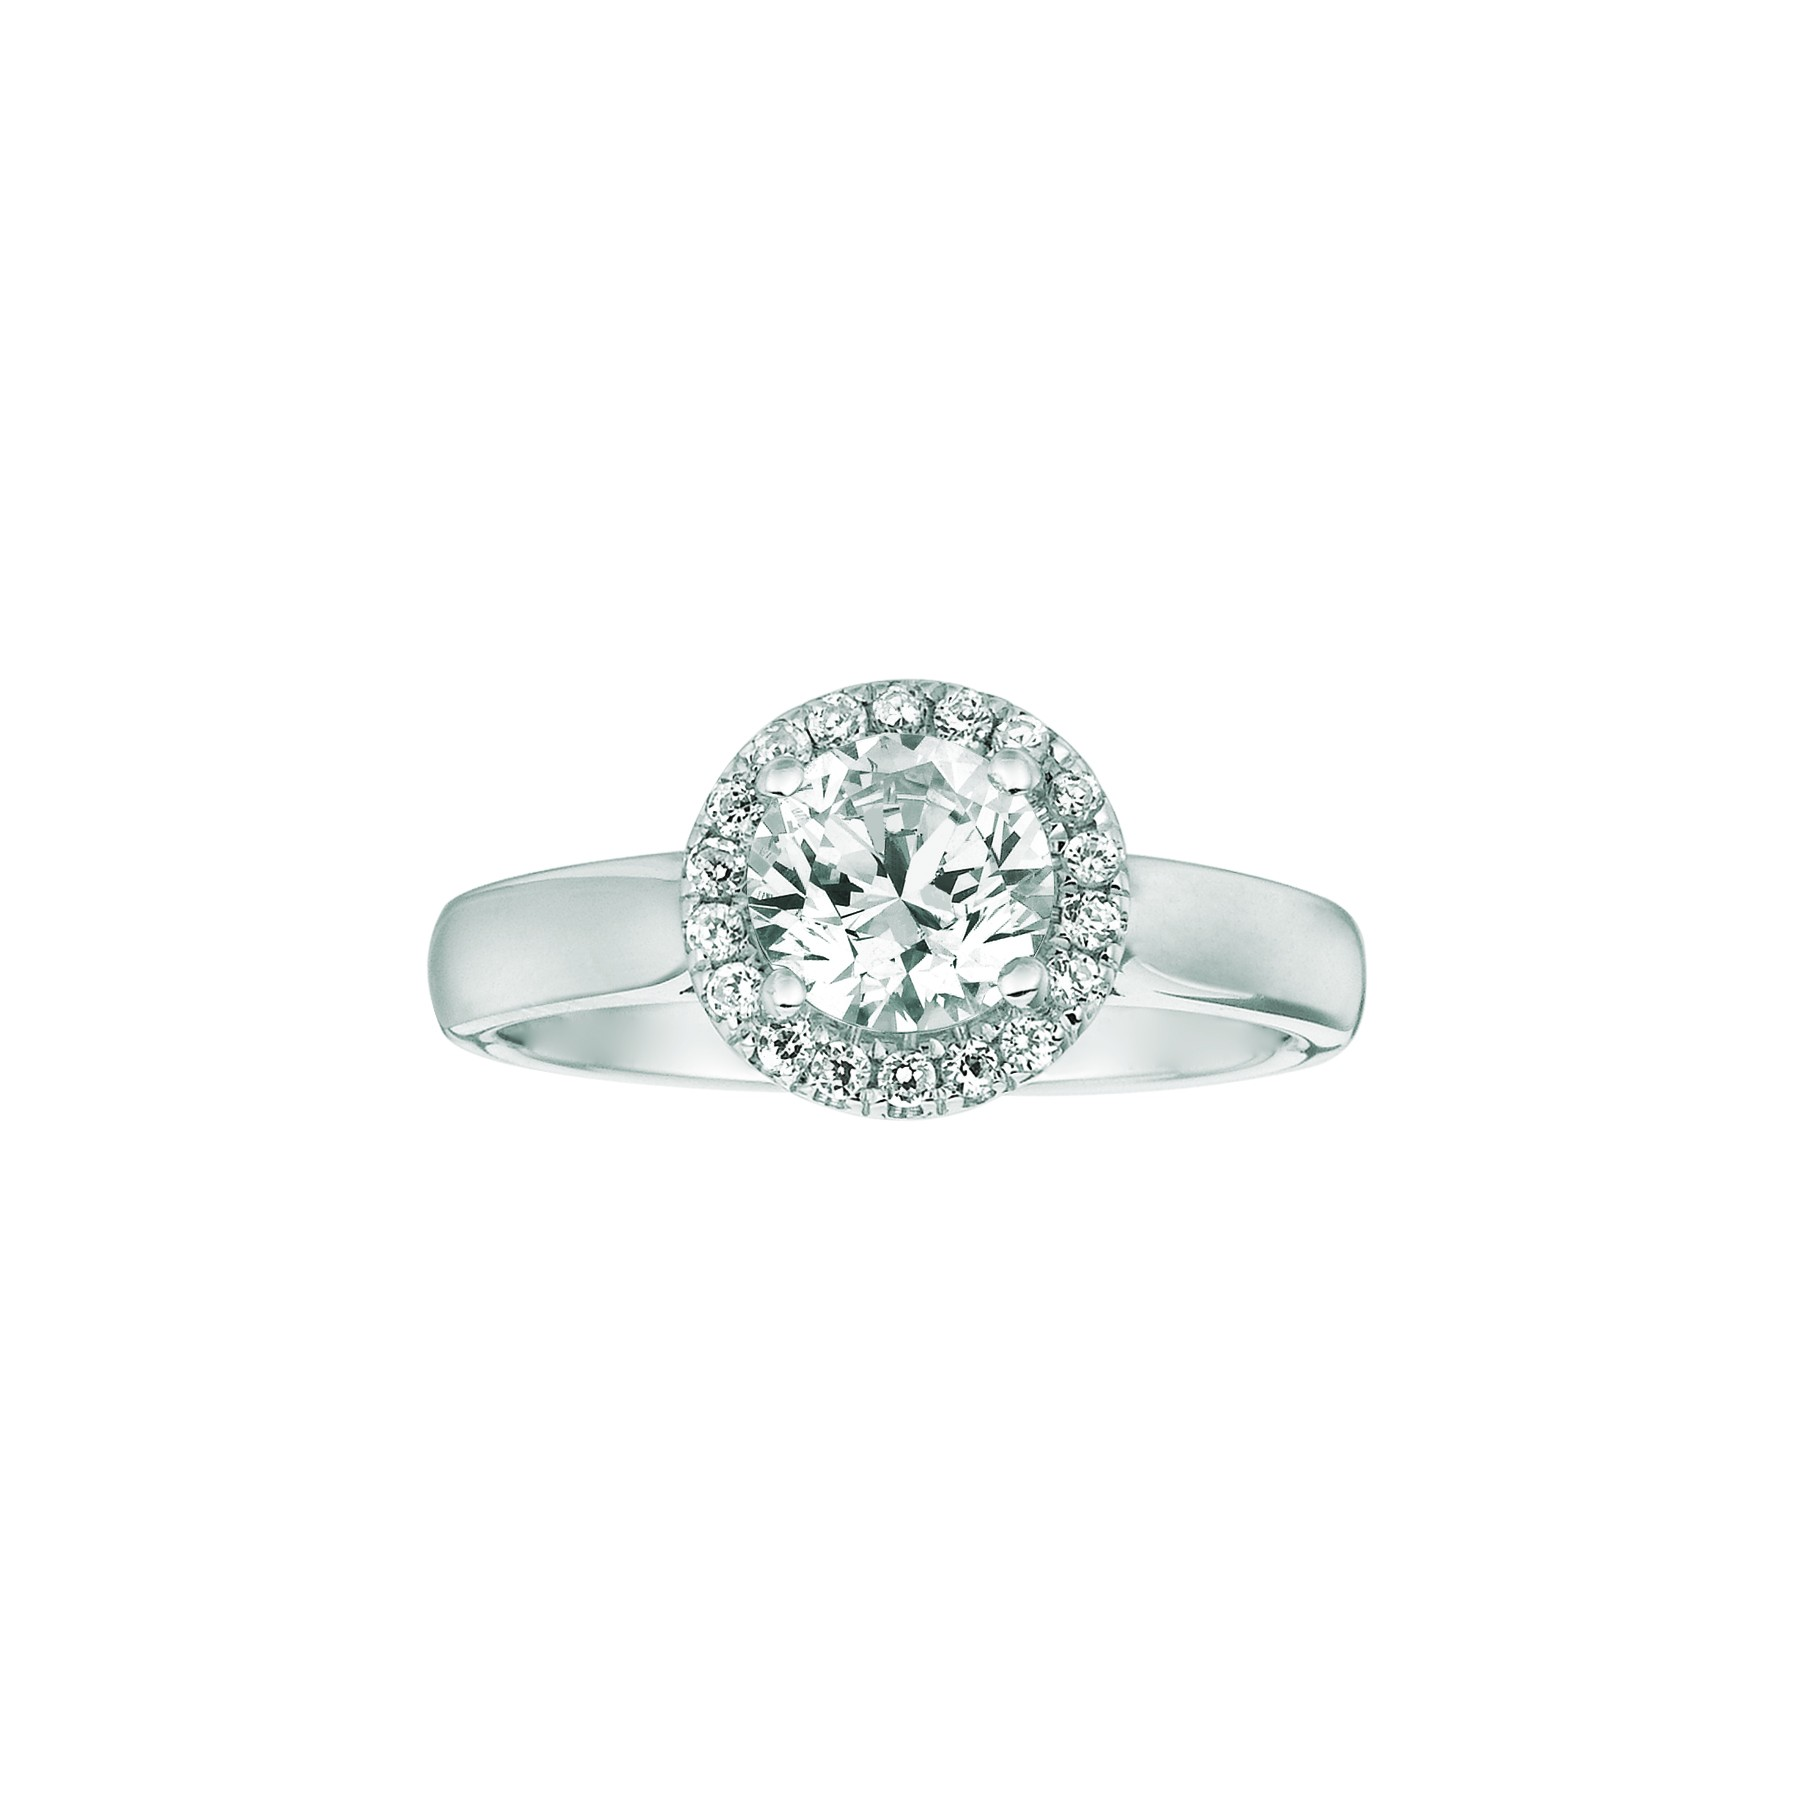 Mervis Bridal Solitaire Platinum Hand Engraved Engagement Ring